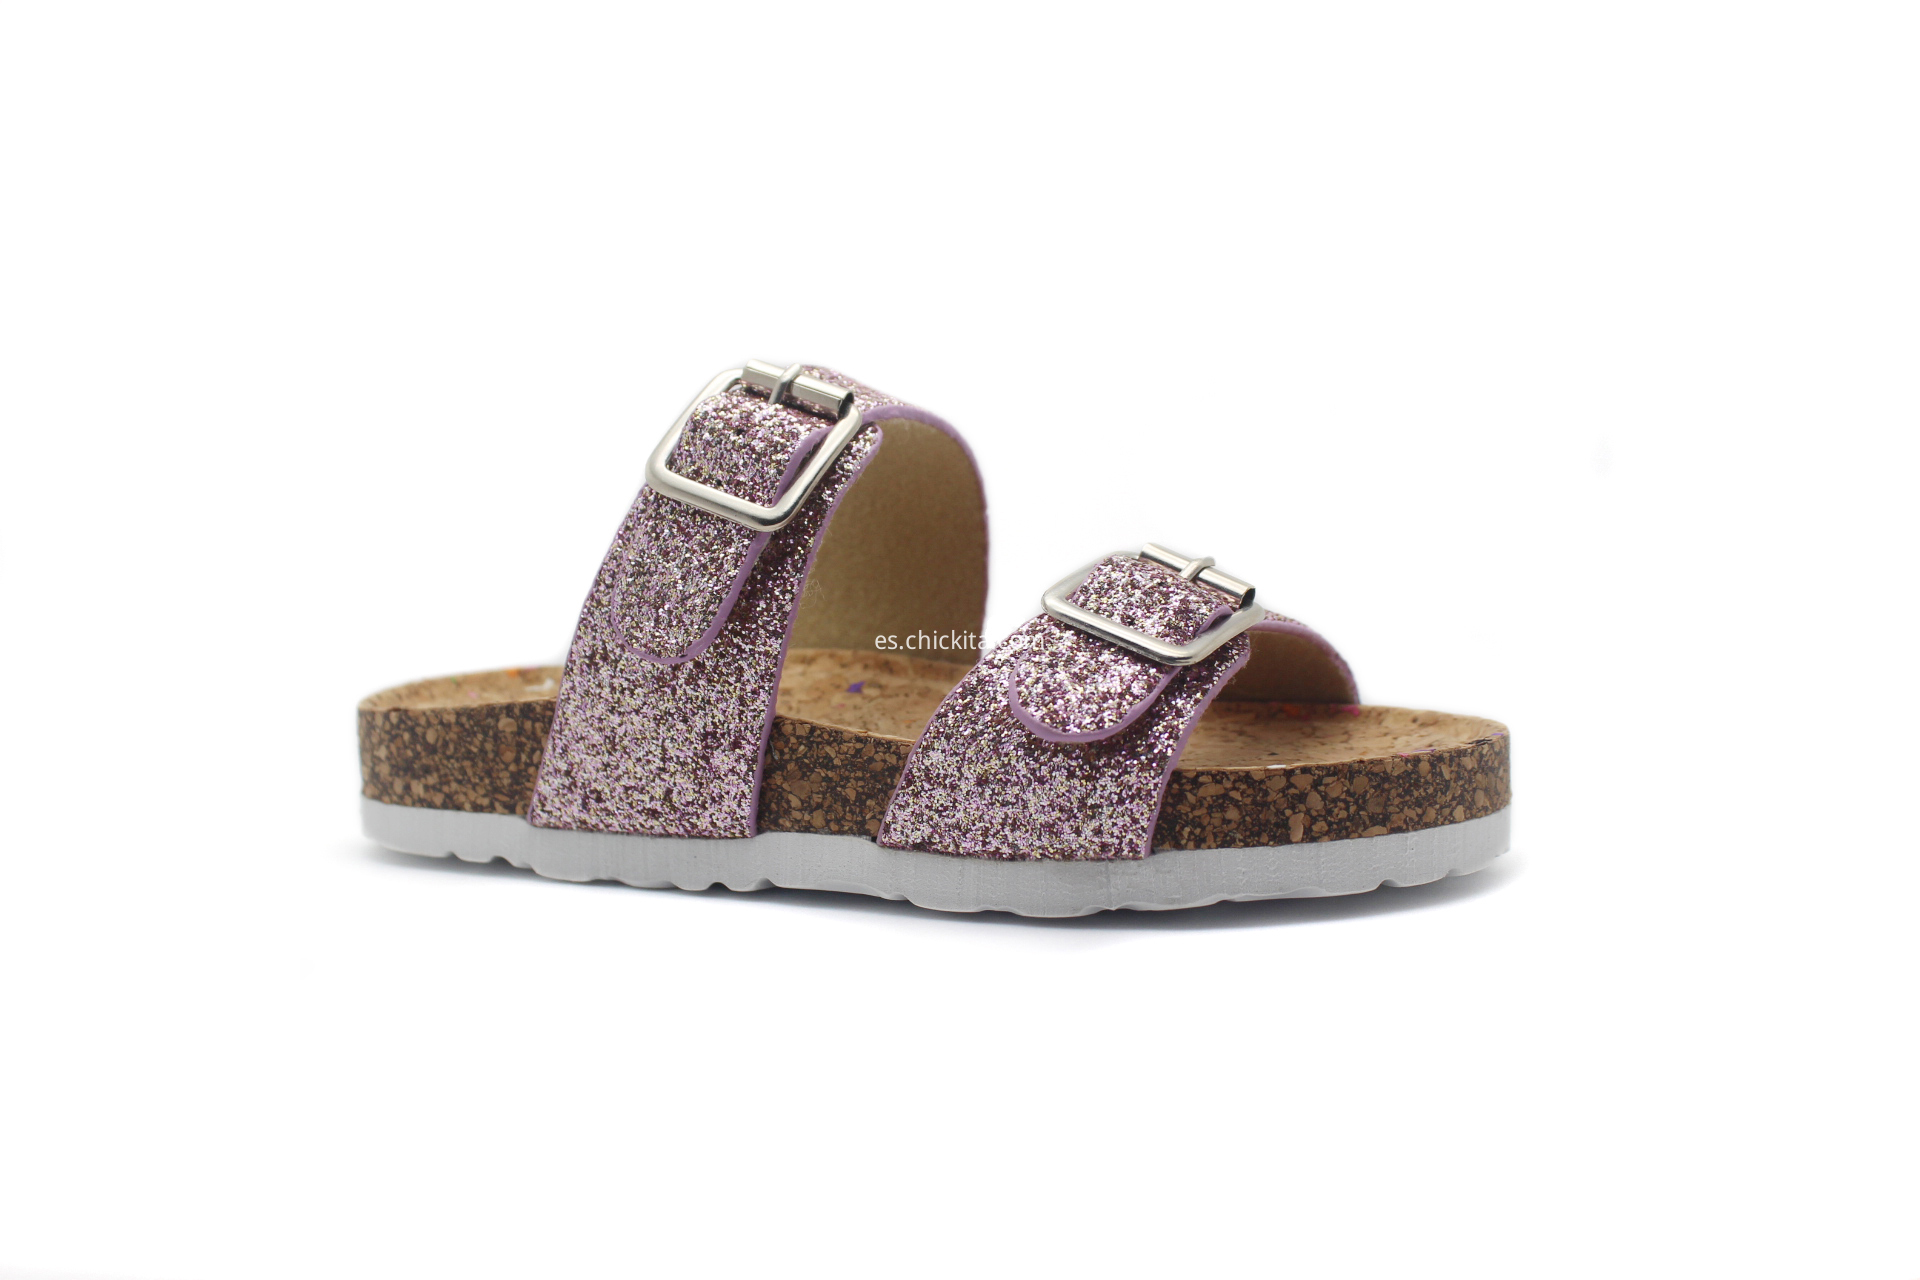 Birkenstock sandals for kids, girls